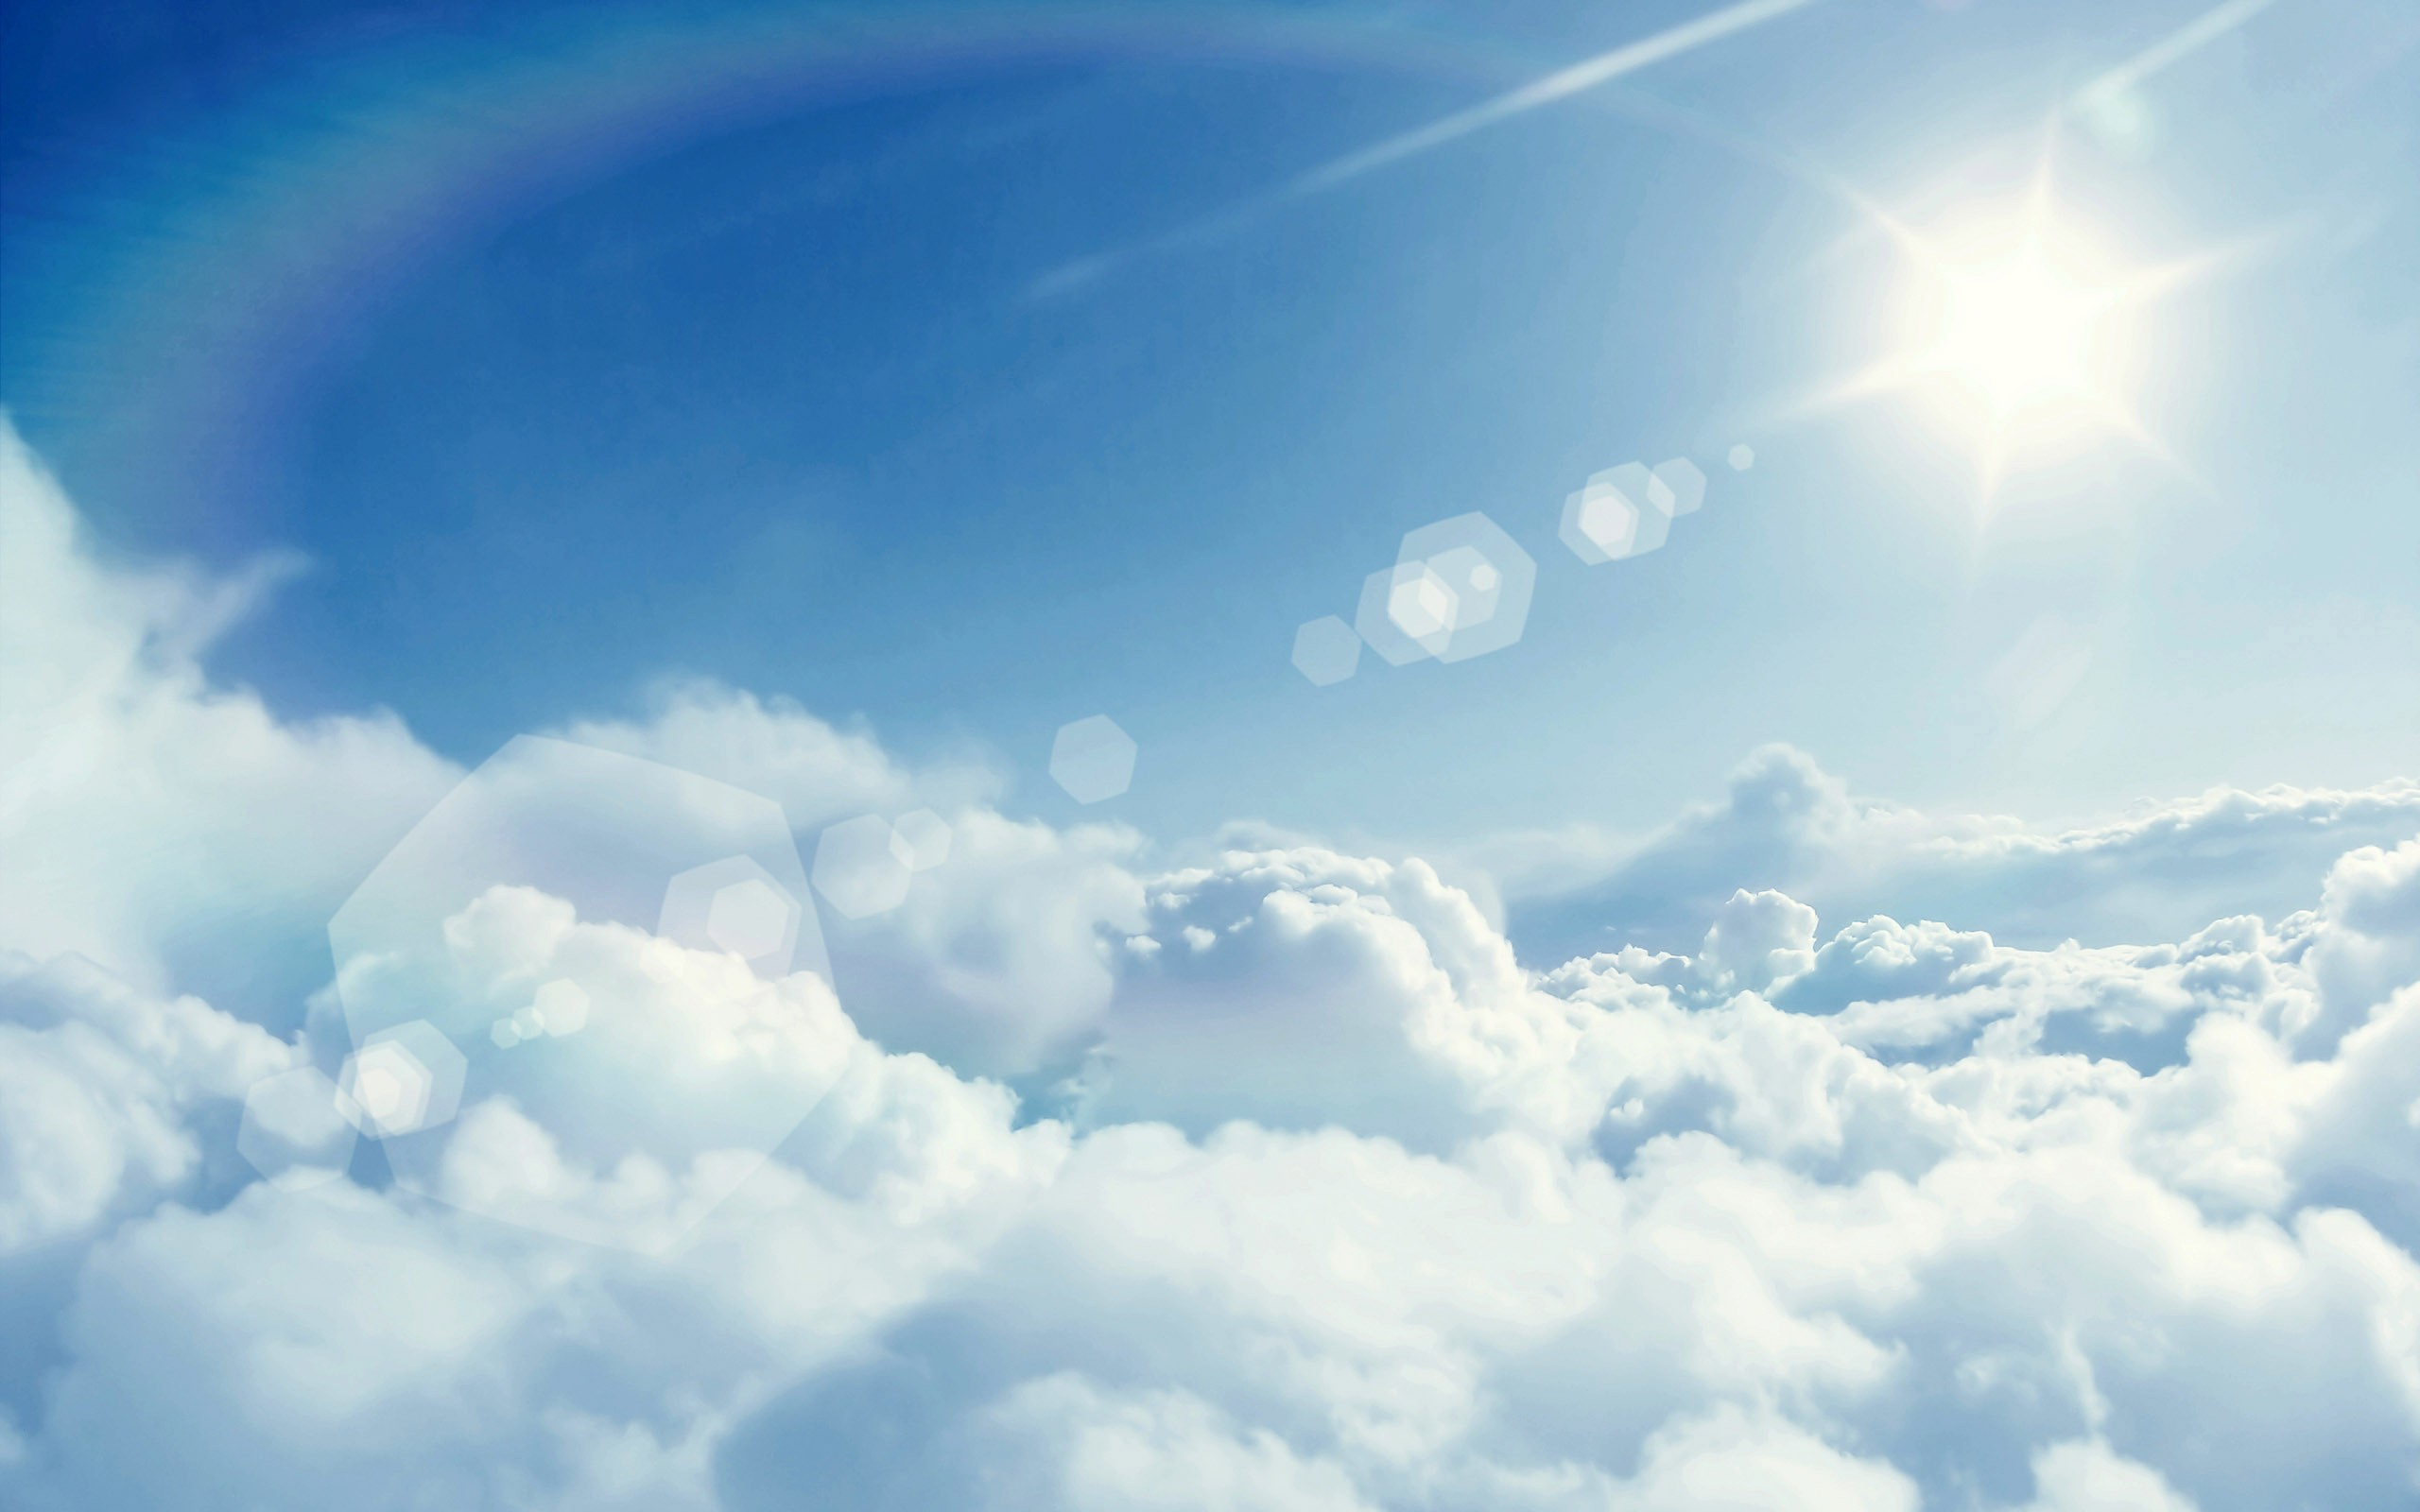 Clouds Wallpaper Download Free Stunning Full Hd Backgrounds